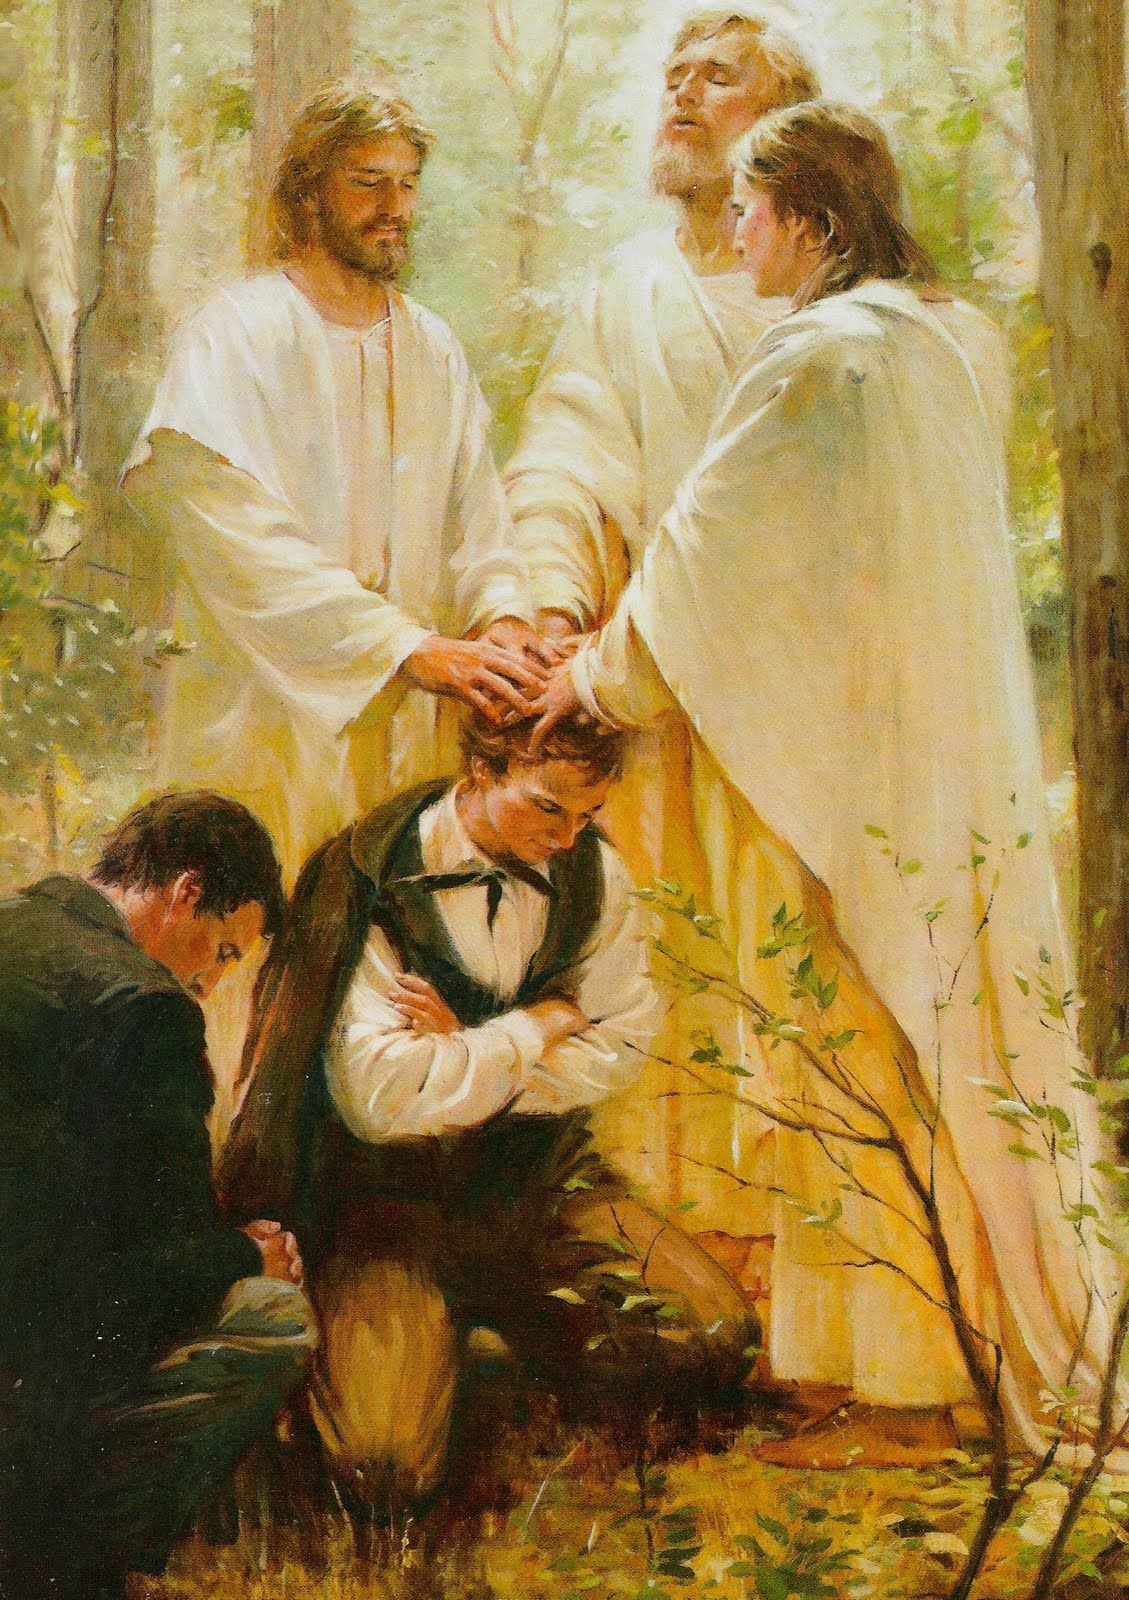 joseph smith and the mormon church W hen joseph smith, founder of the mormon church, received a revelation in about 1831 in which he was commanded by god to break the law and take multiple wives, he at first resisted.